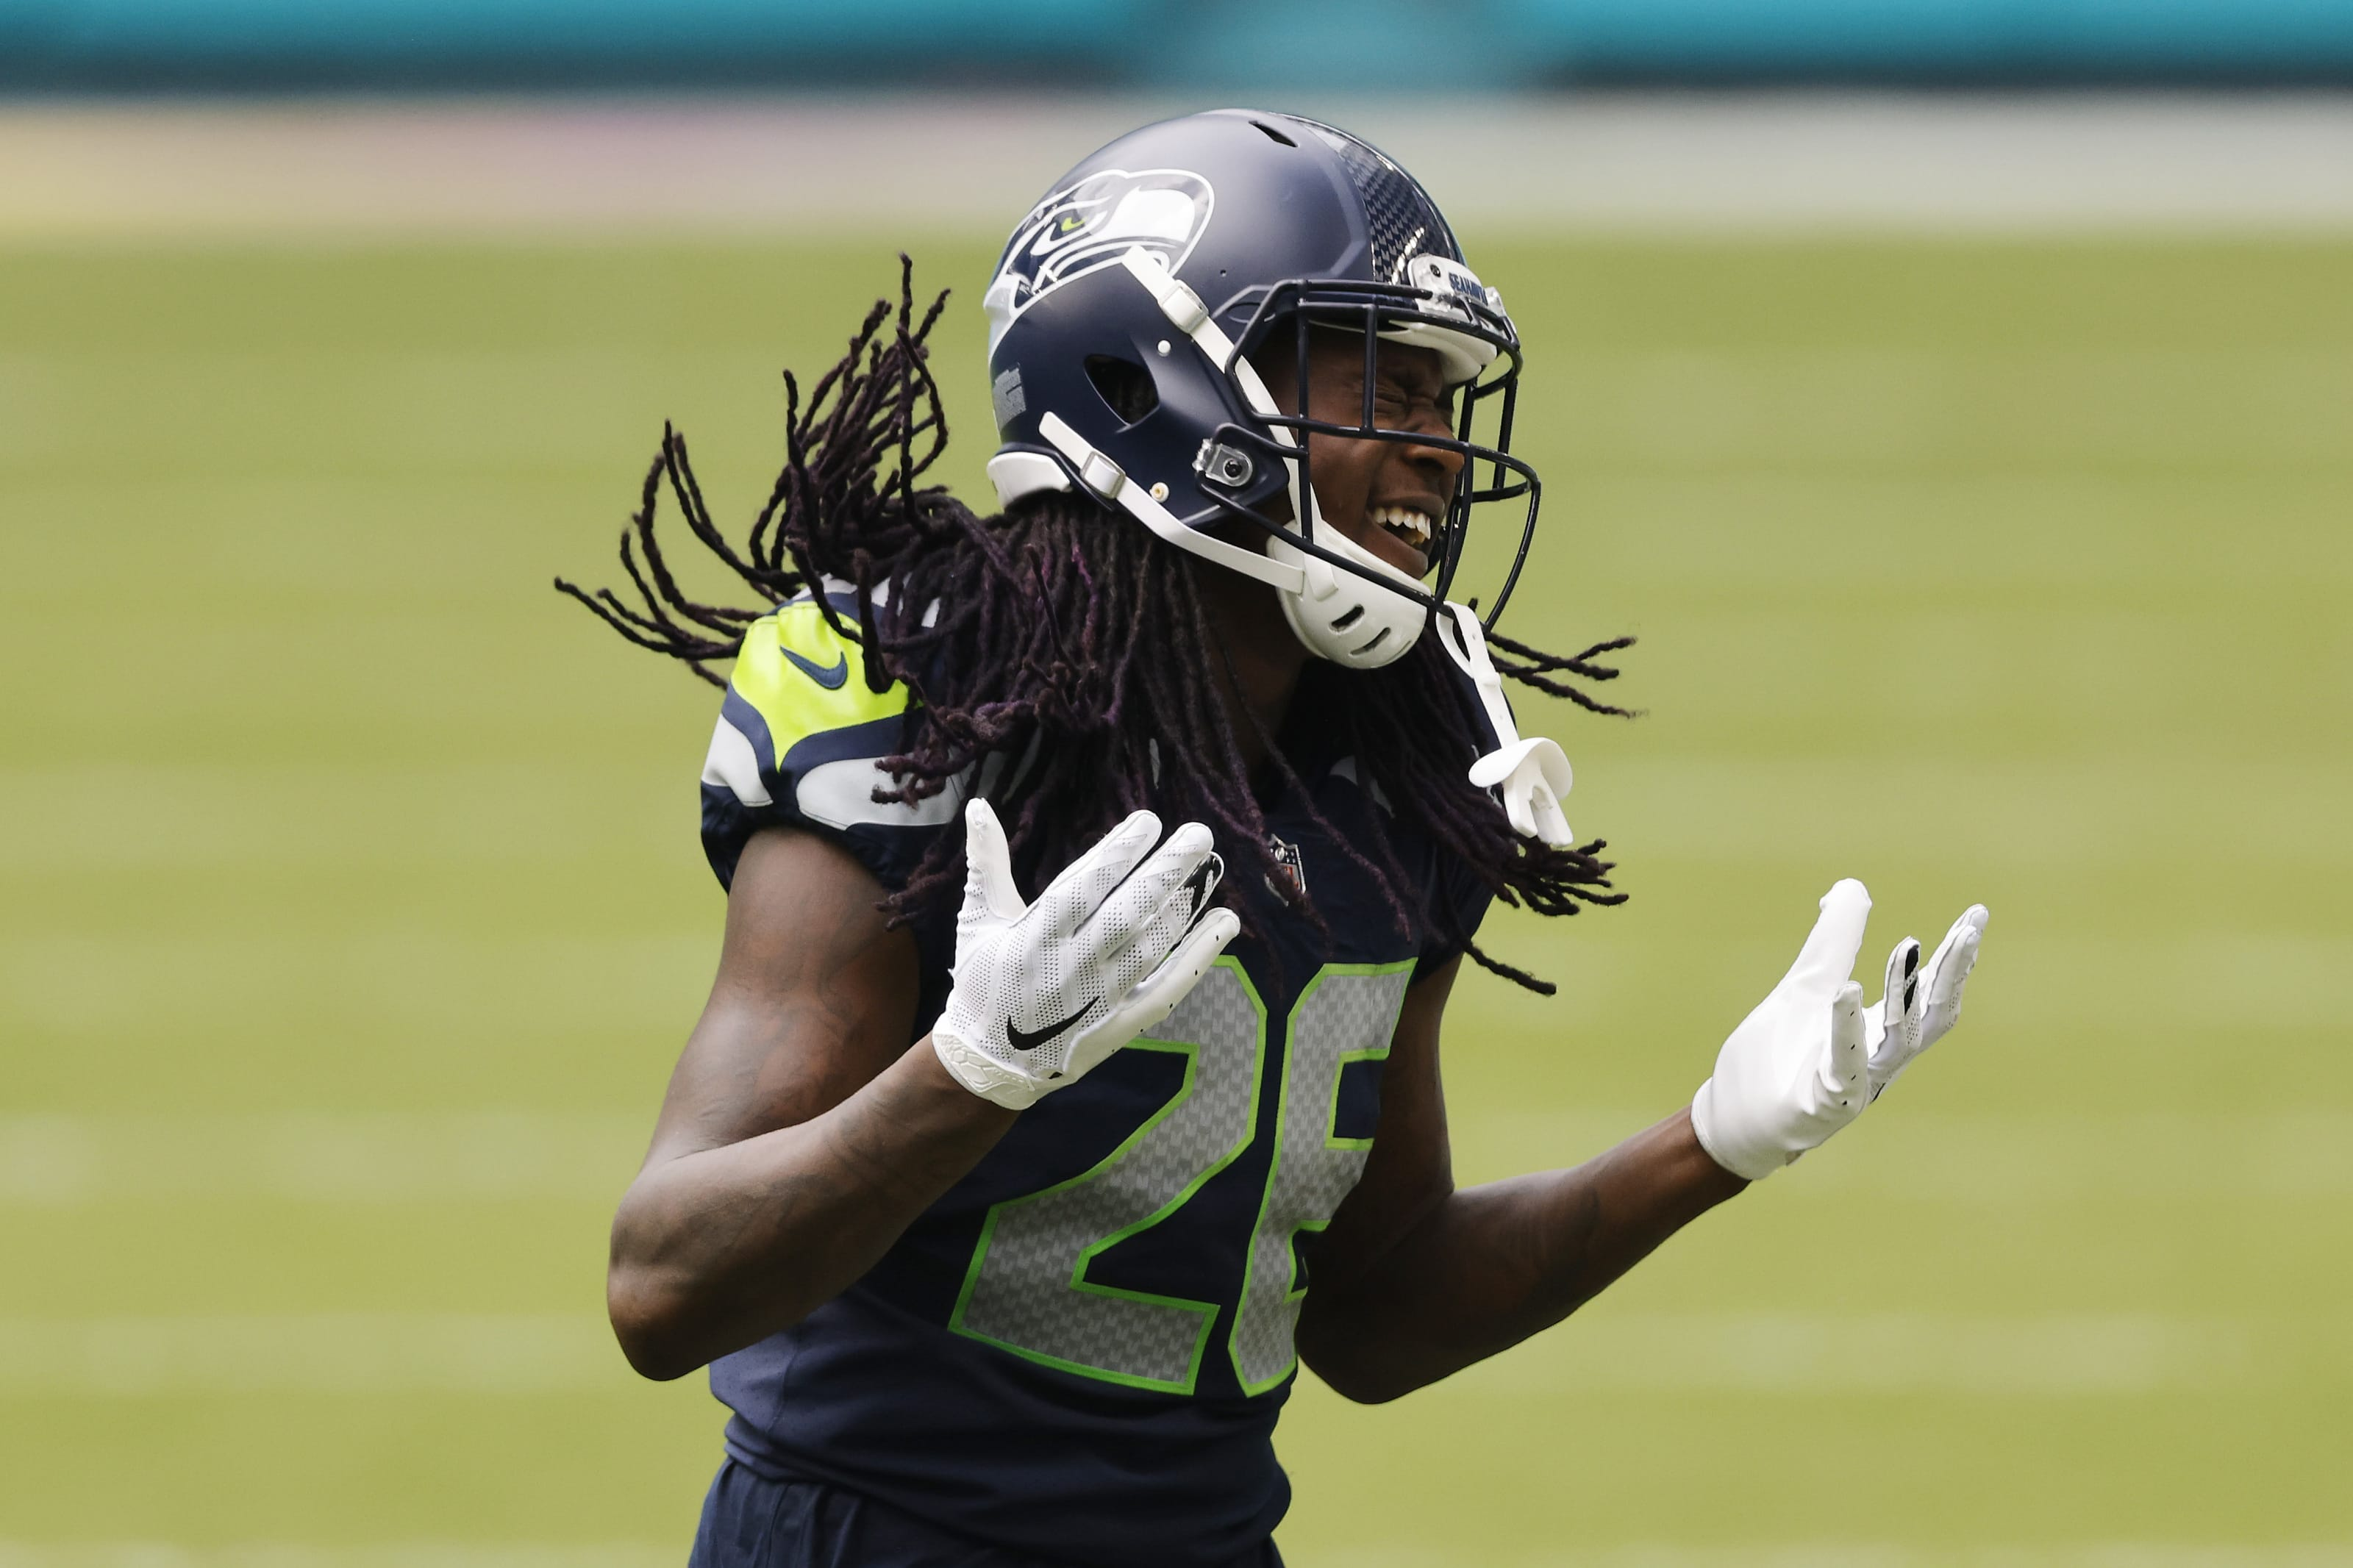 Panthers free agency rumors, Shaquill Griffin